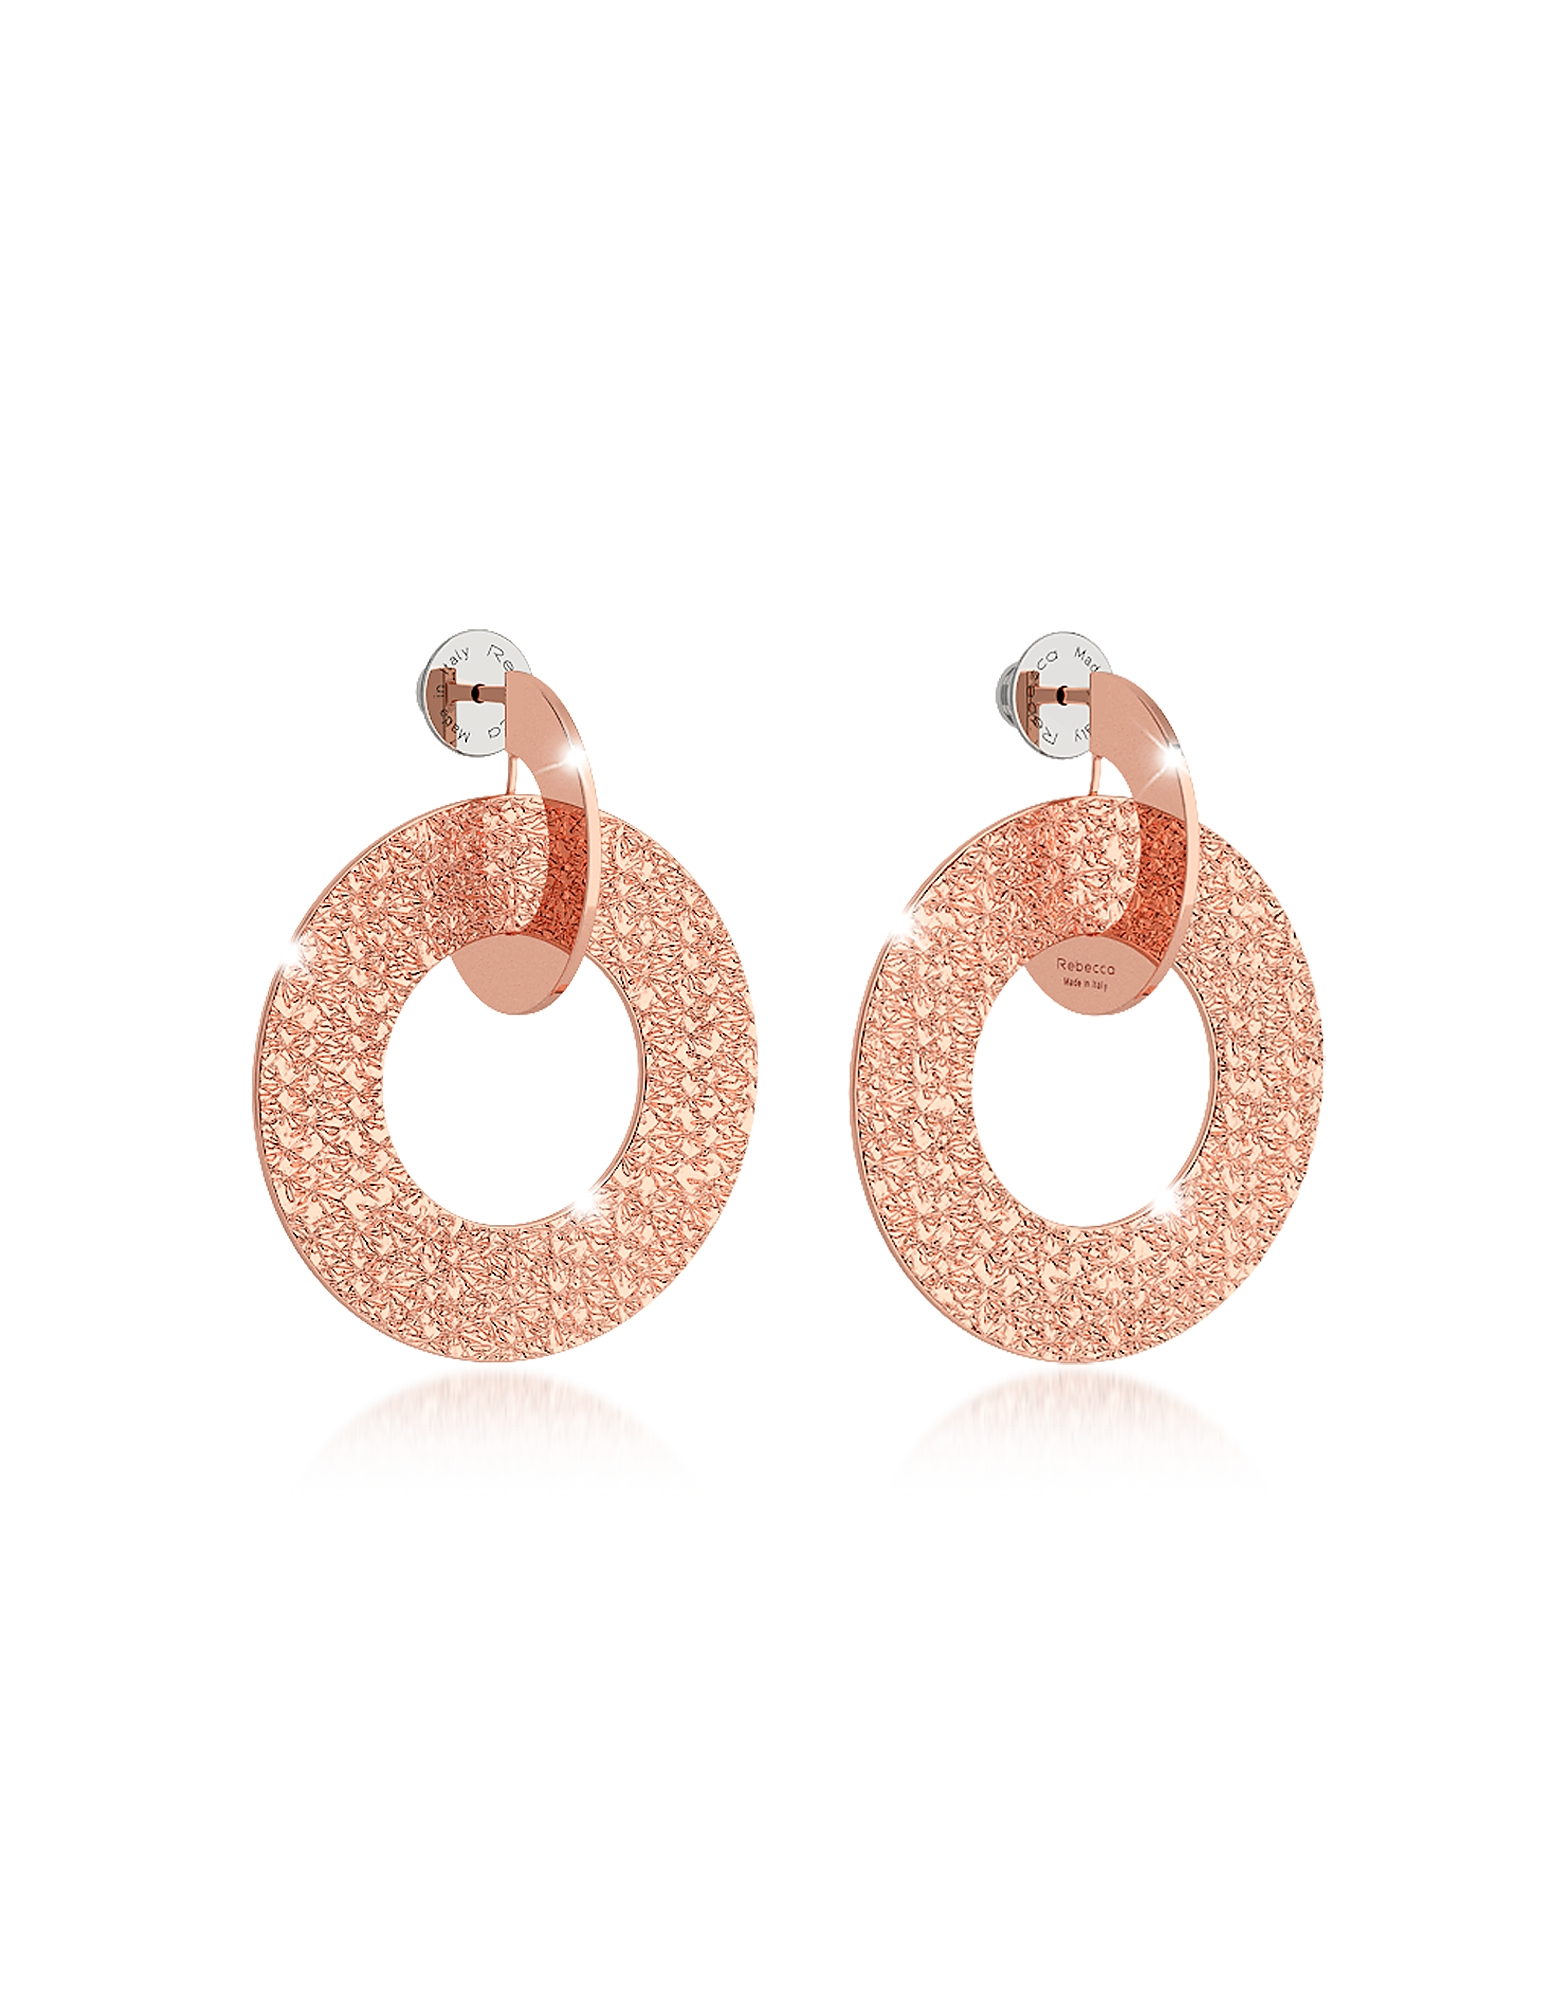 Rebecca Earrings, R-Zero Rose Gold Over Bronze Drop Hoop Earrings